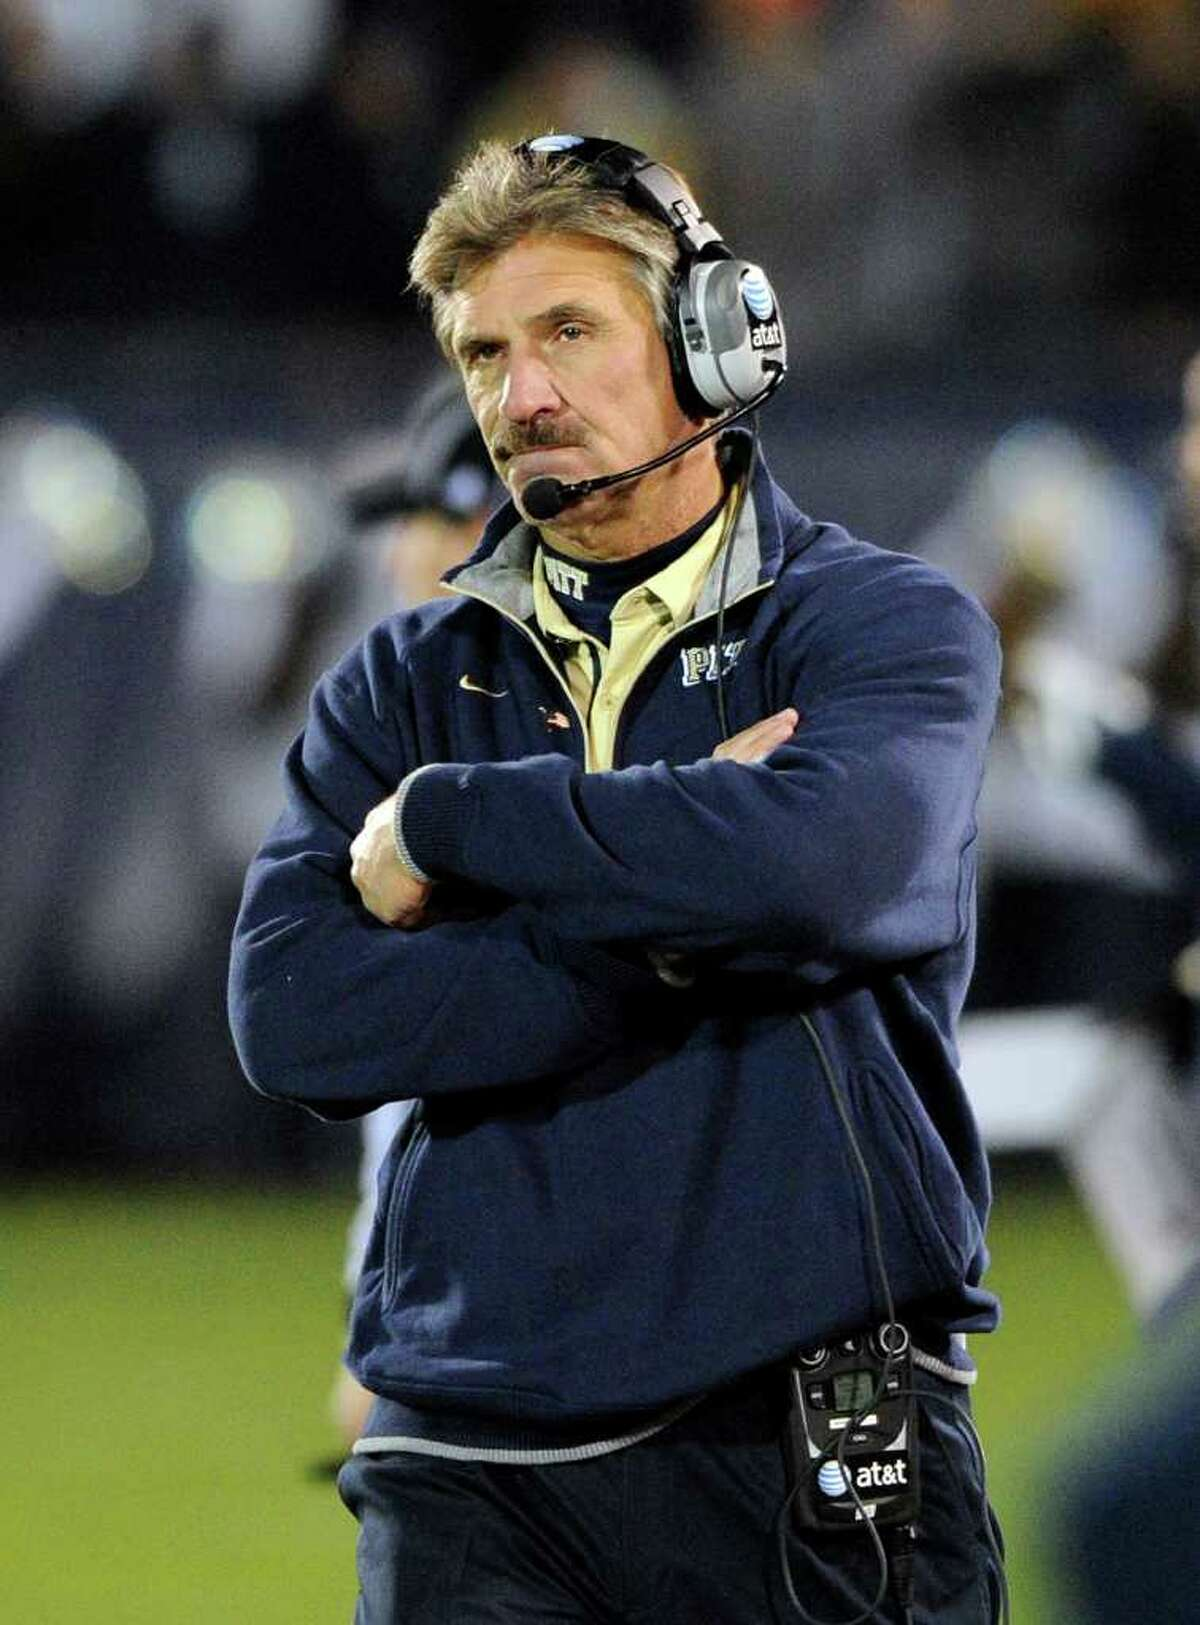 Pittsburgh coach Dave Wannstedt reacts late in the second quarter of his team's 30-28 loss to Connecticut in an NCAA college football game in East Hartford, Conn., on Thursday, Nov. 11, 2010. (AP Photo/Fred Beckham)